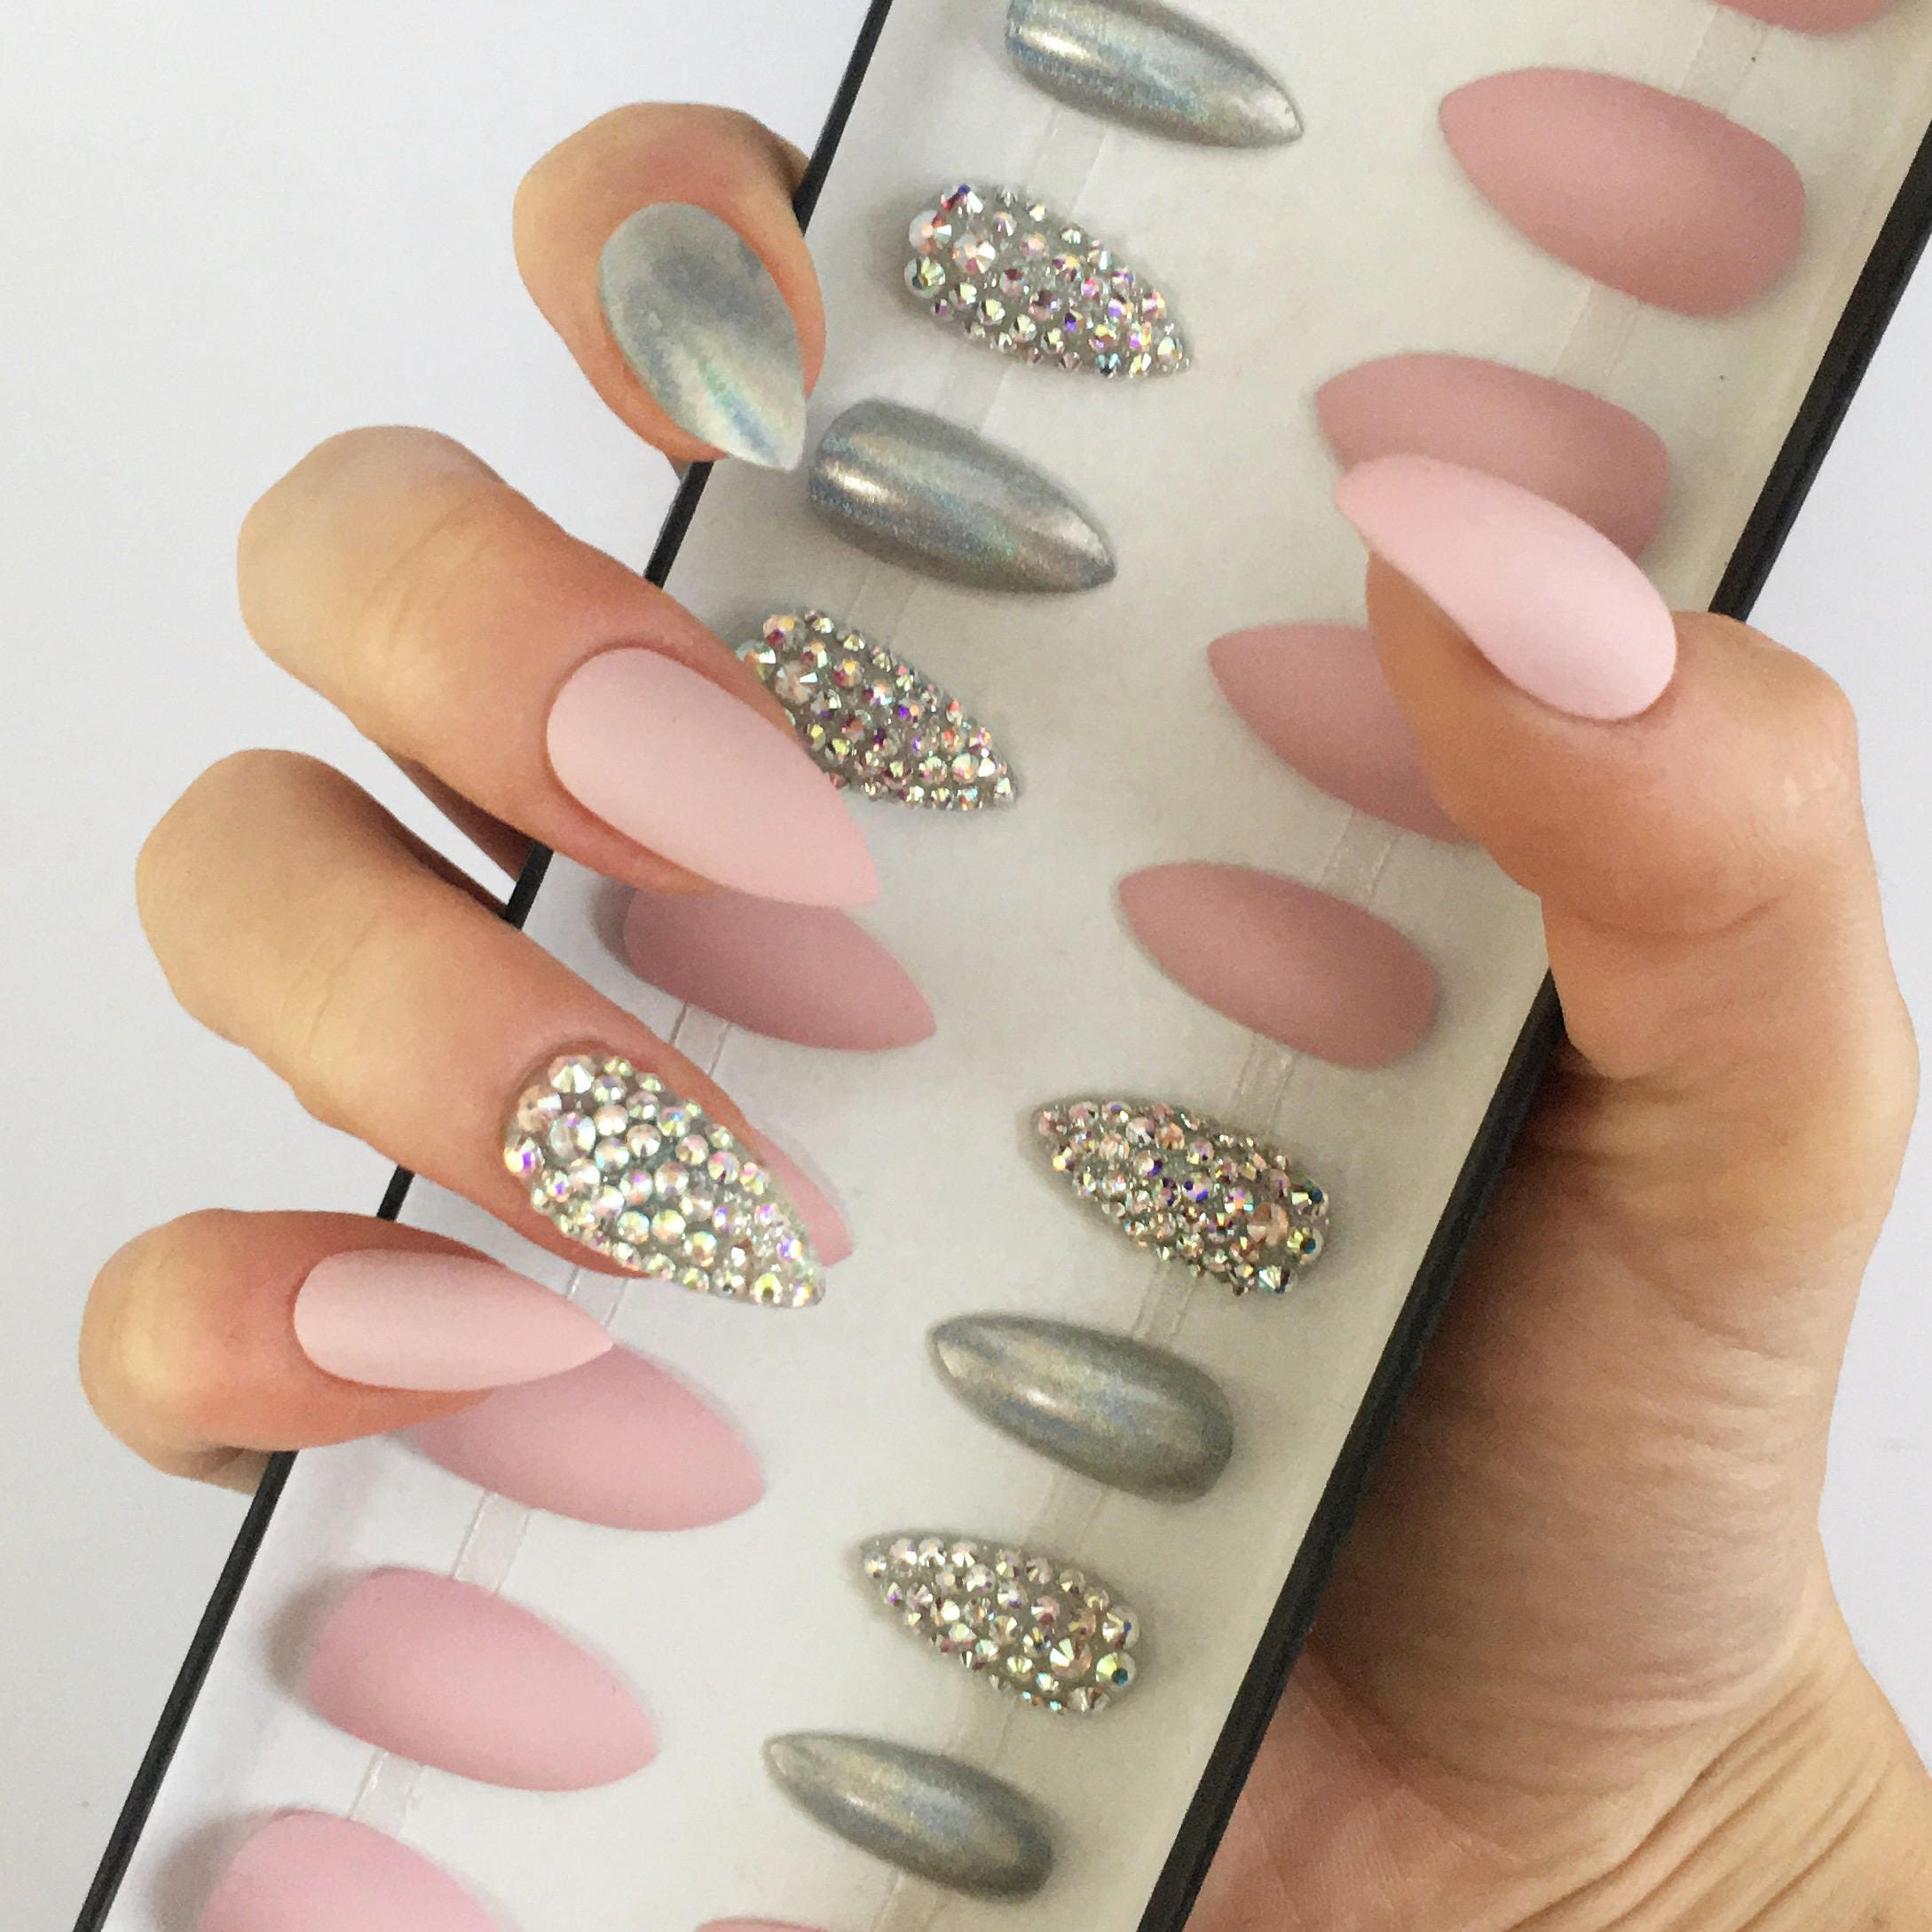 Pink press on nails • Swarovski crystals • stiletto nails • coffin ...